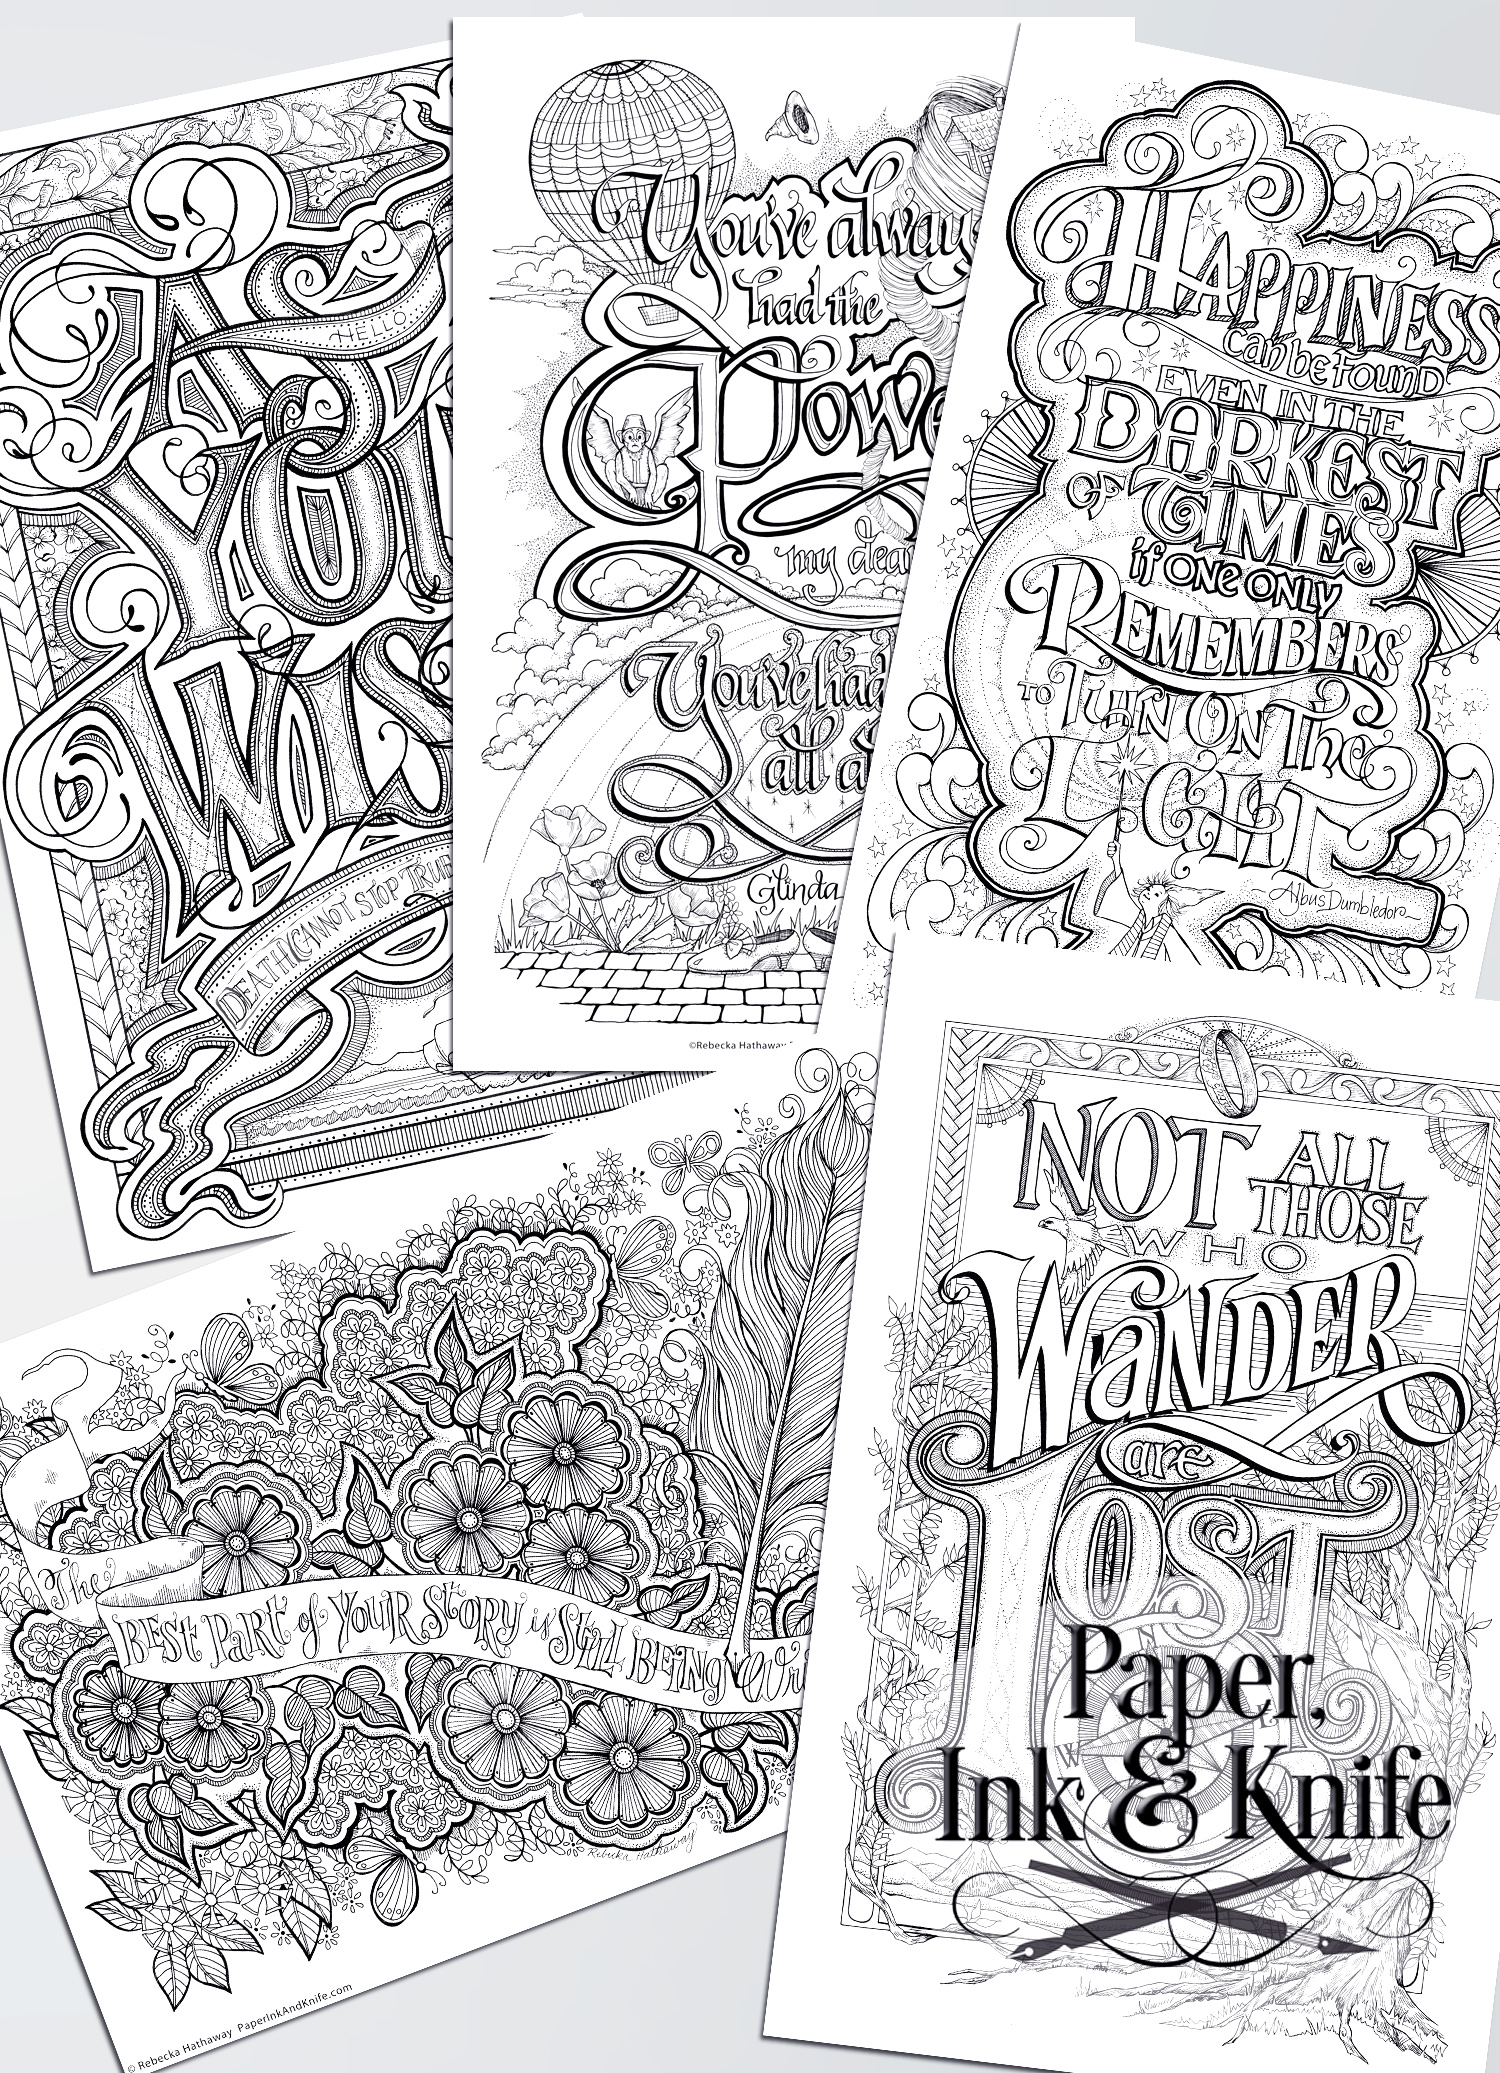 Coloring Poster Set Wise Words Paper Ink And Knife Coloring Posters